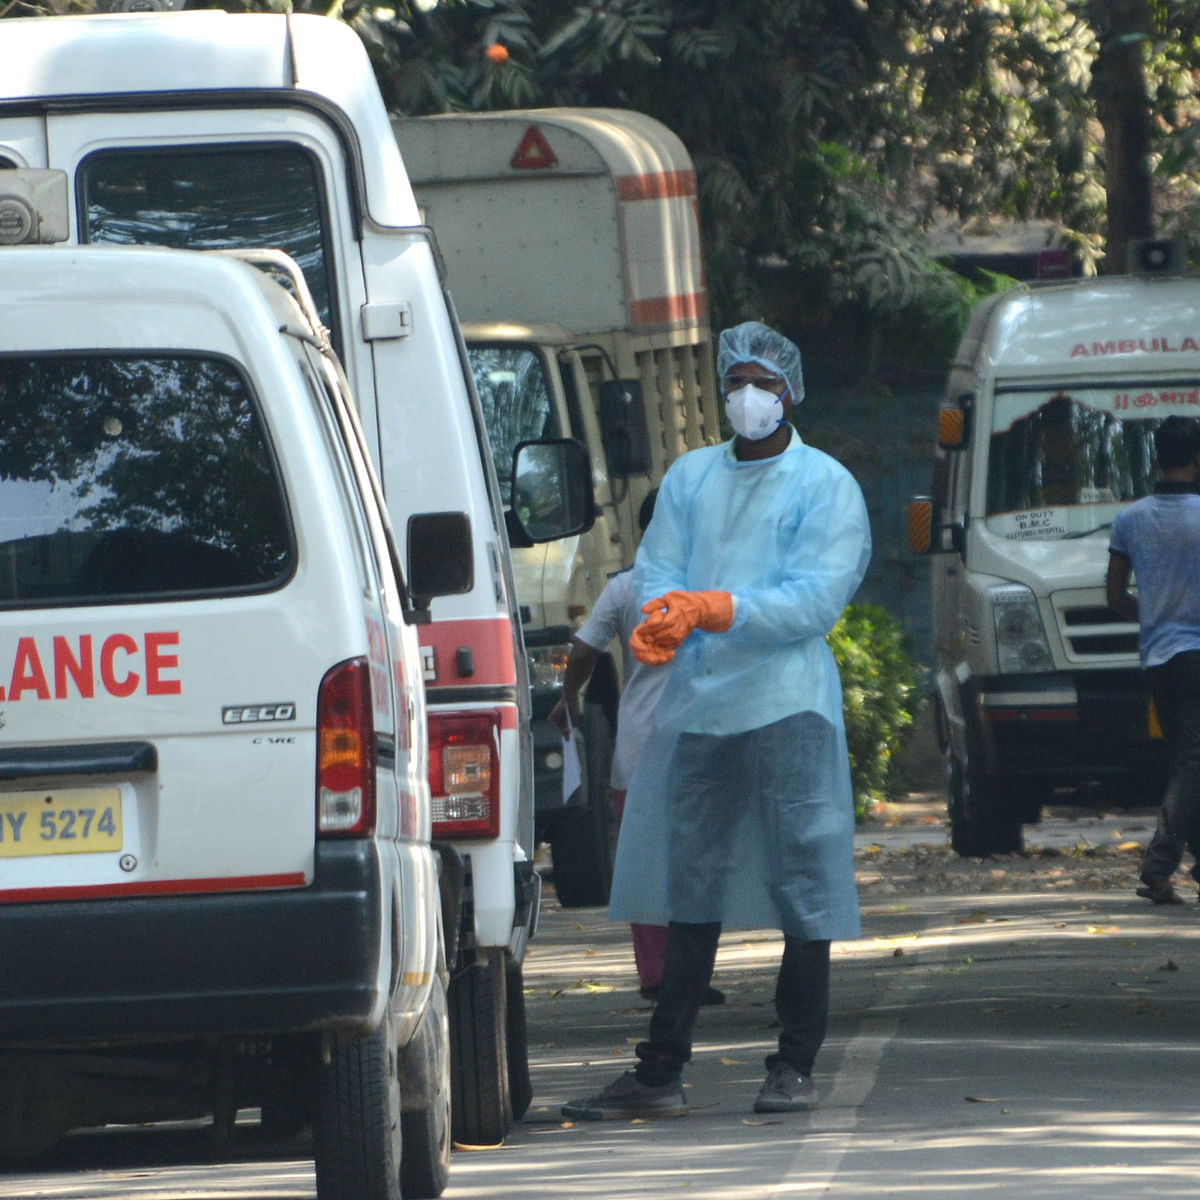 Coronavirus in Mumbai: With 3 new cases in state, toll is now 130